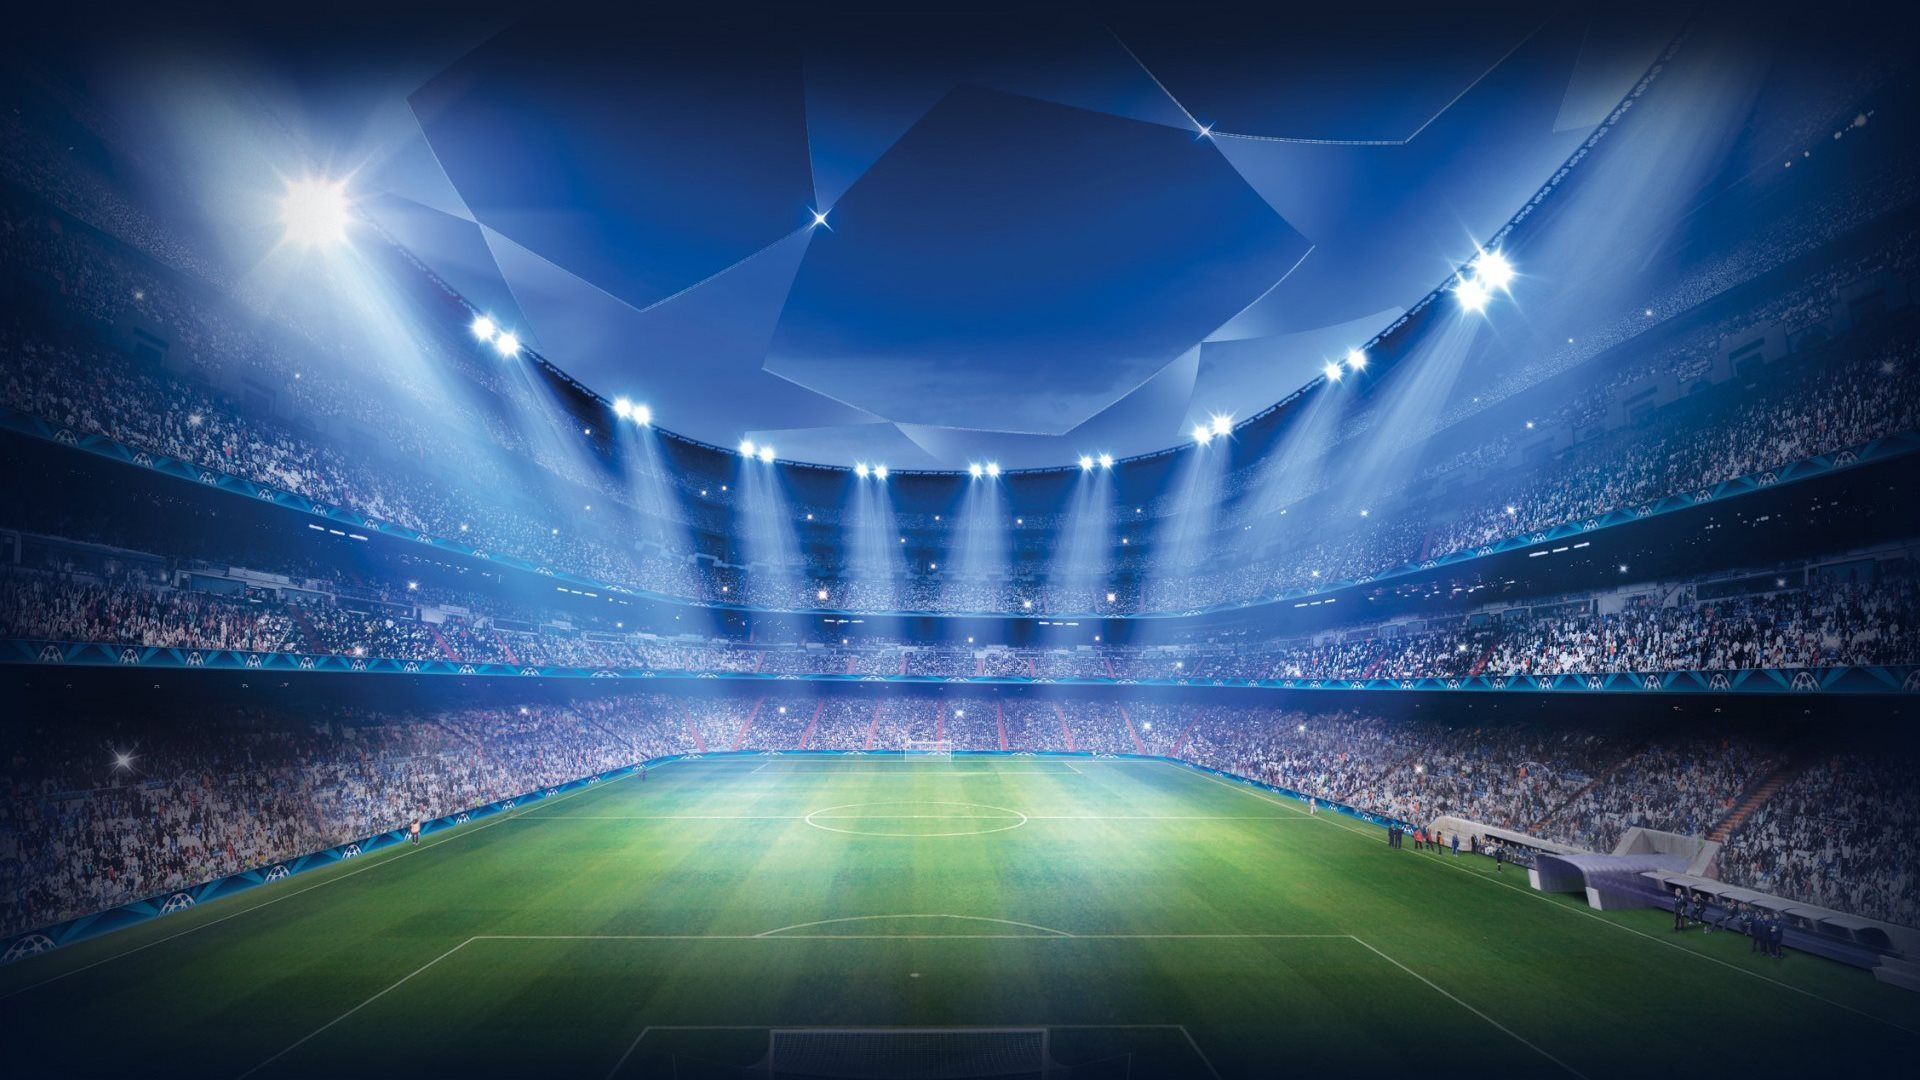 Hd Football Wallpapers Hd Wallpapers Backgrounds Of Your Choice Uefa Champions League Football Wallpaper Champions League